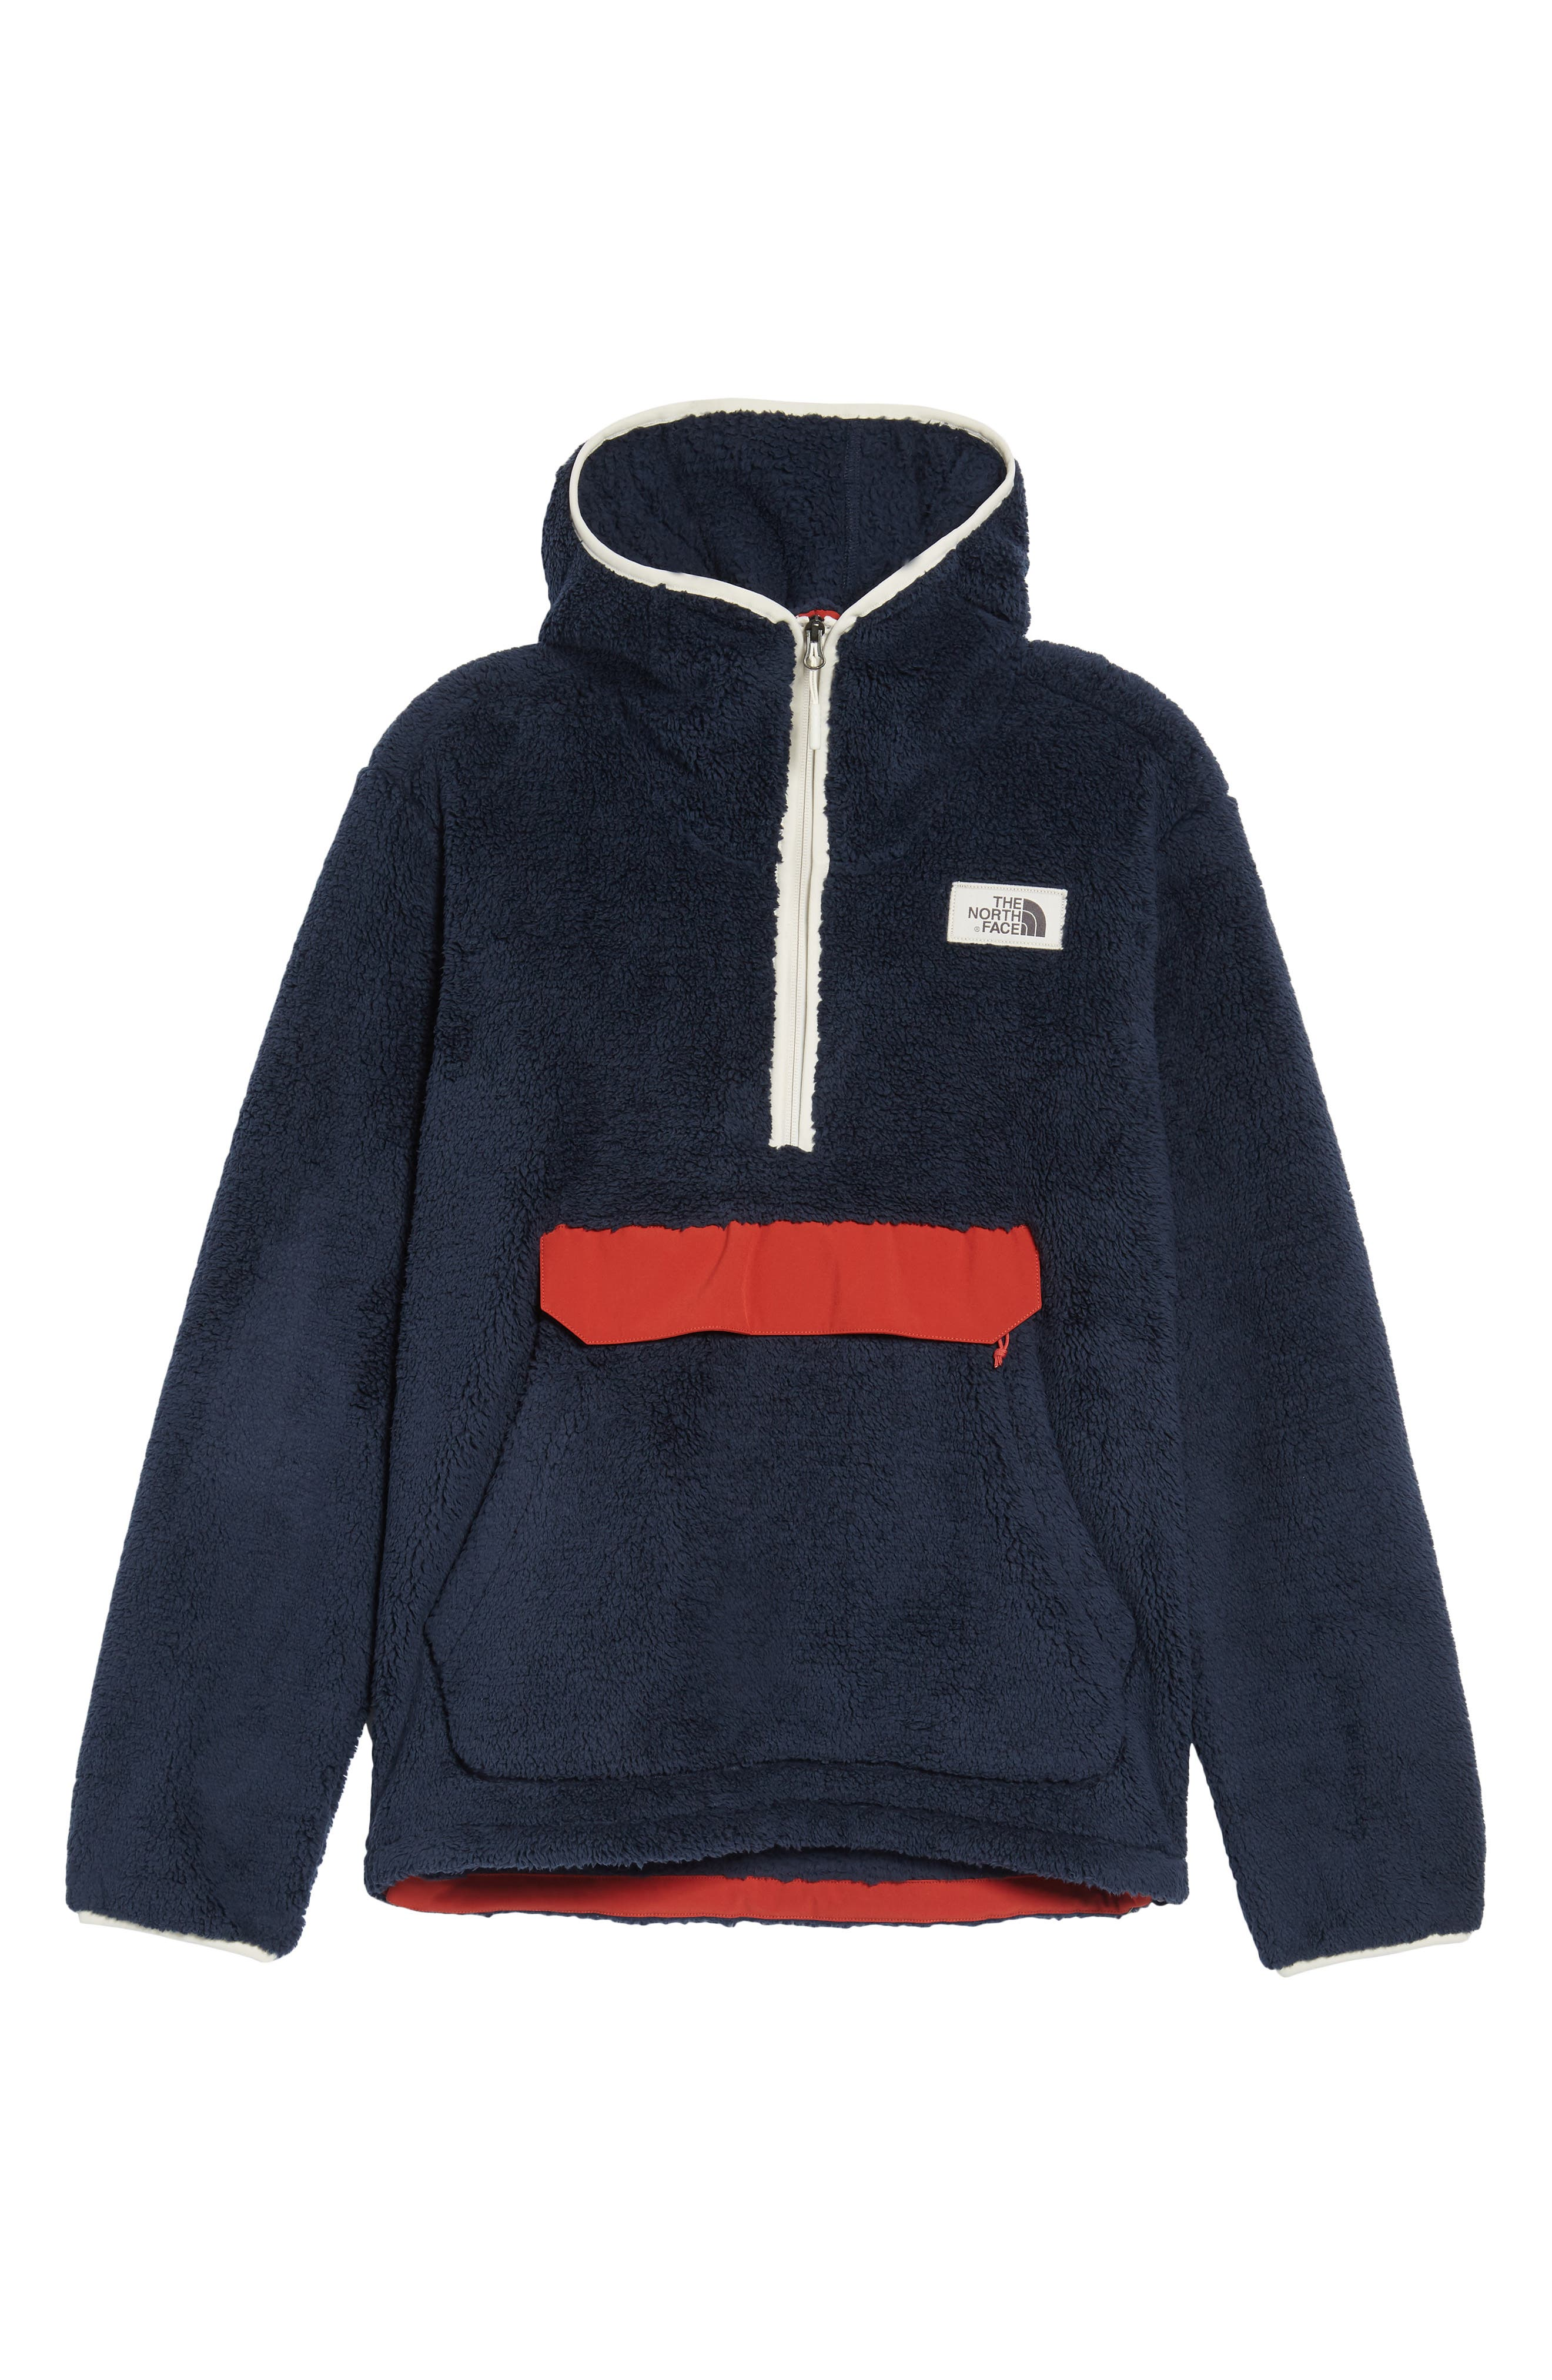 Campshire High Pile Fleece Pullover Hoodie,                             Alternate thumbnail 6, color,                             401